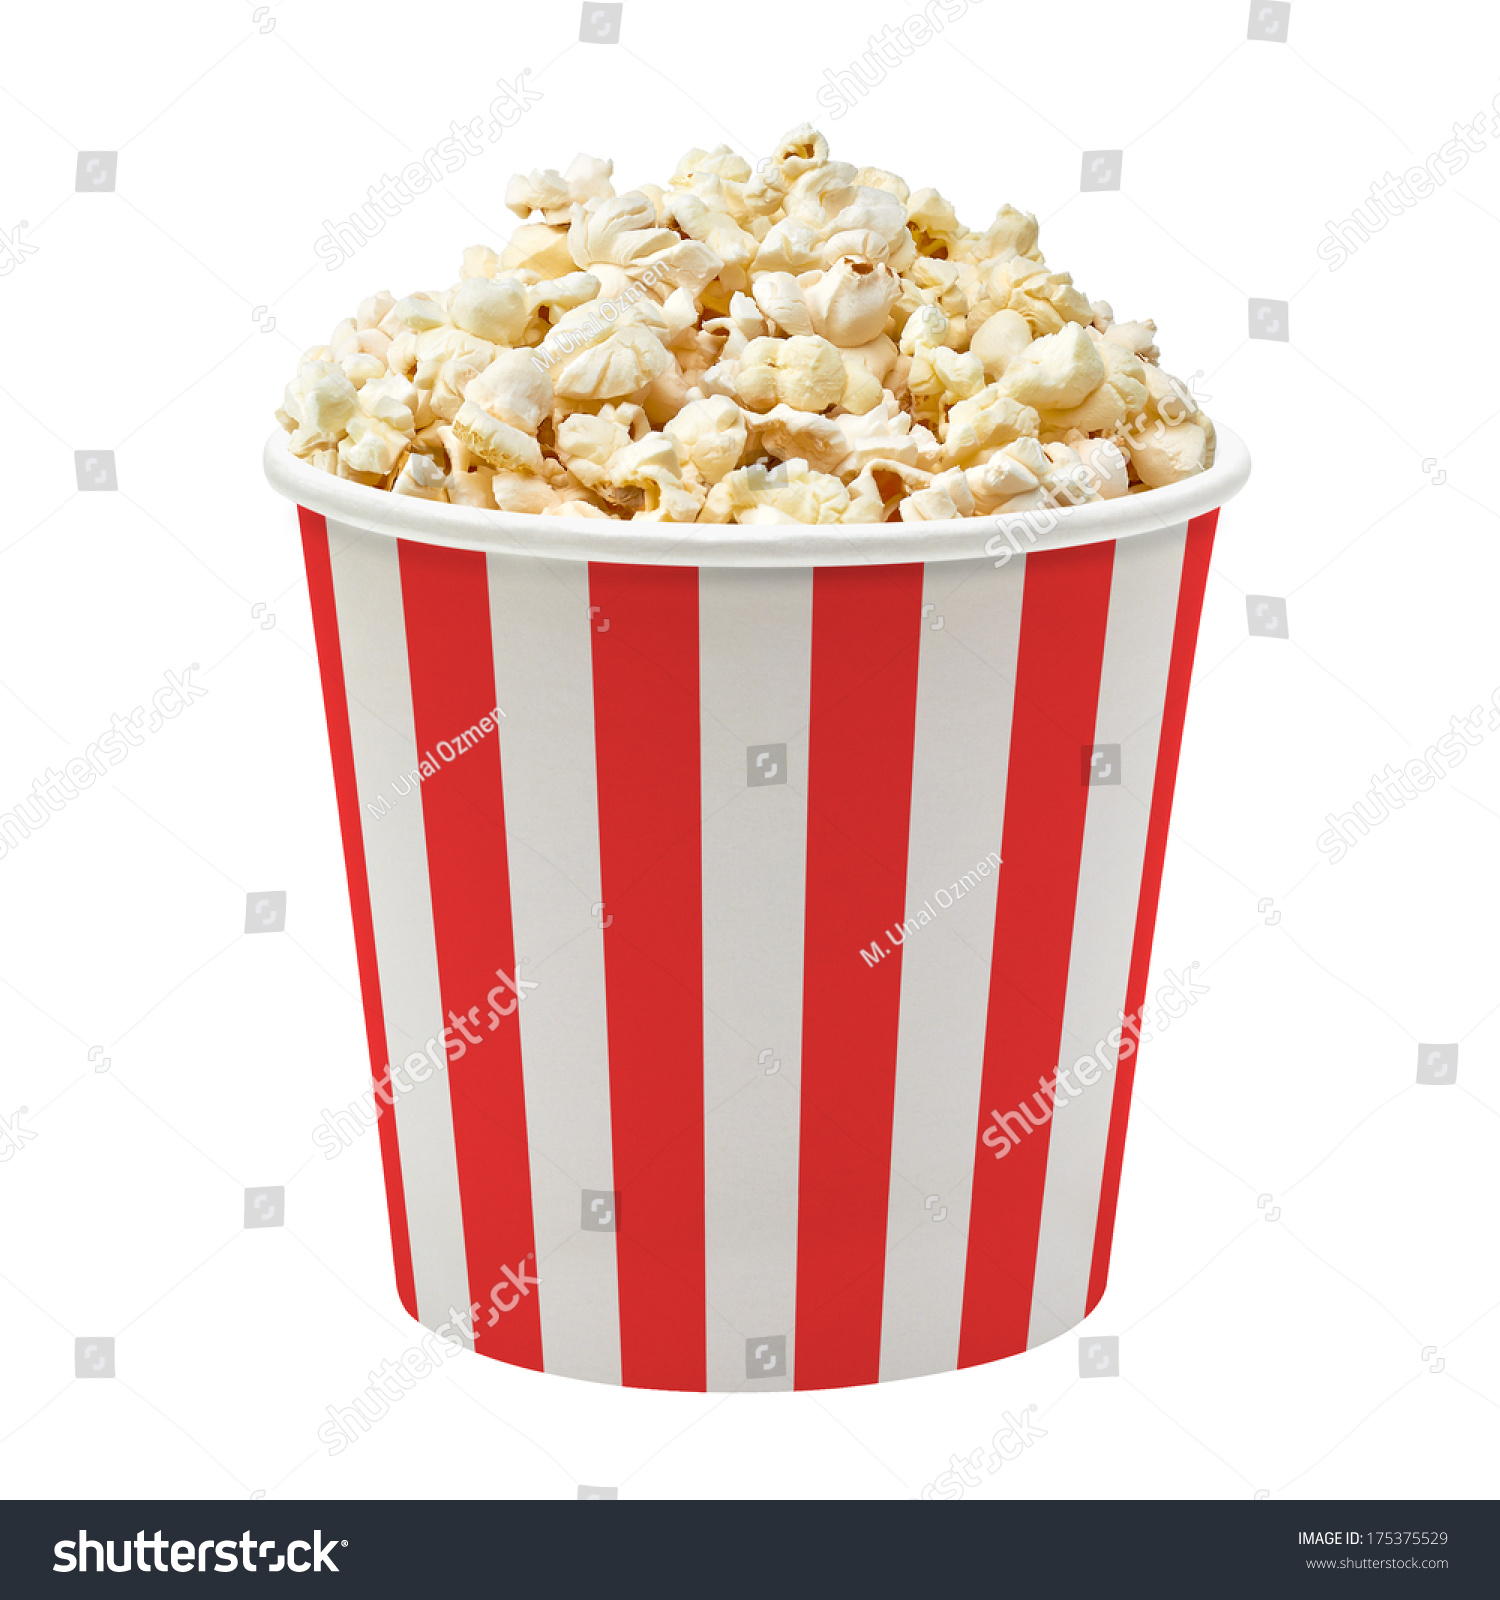 Popcorn in red and white striped cardboard bucket isolated on white background #175375529